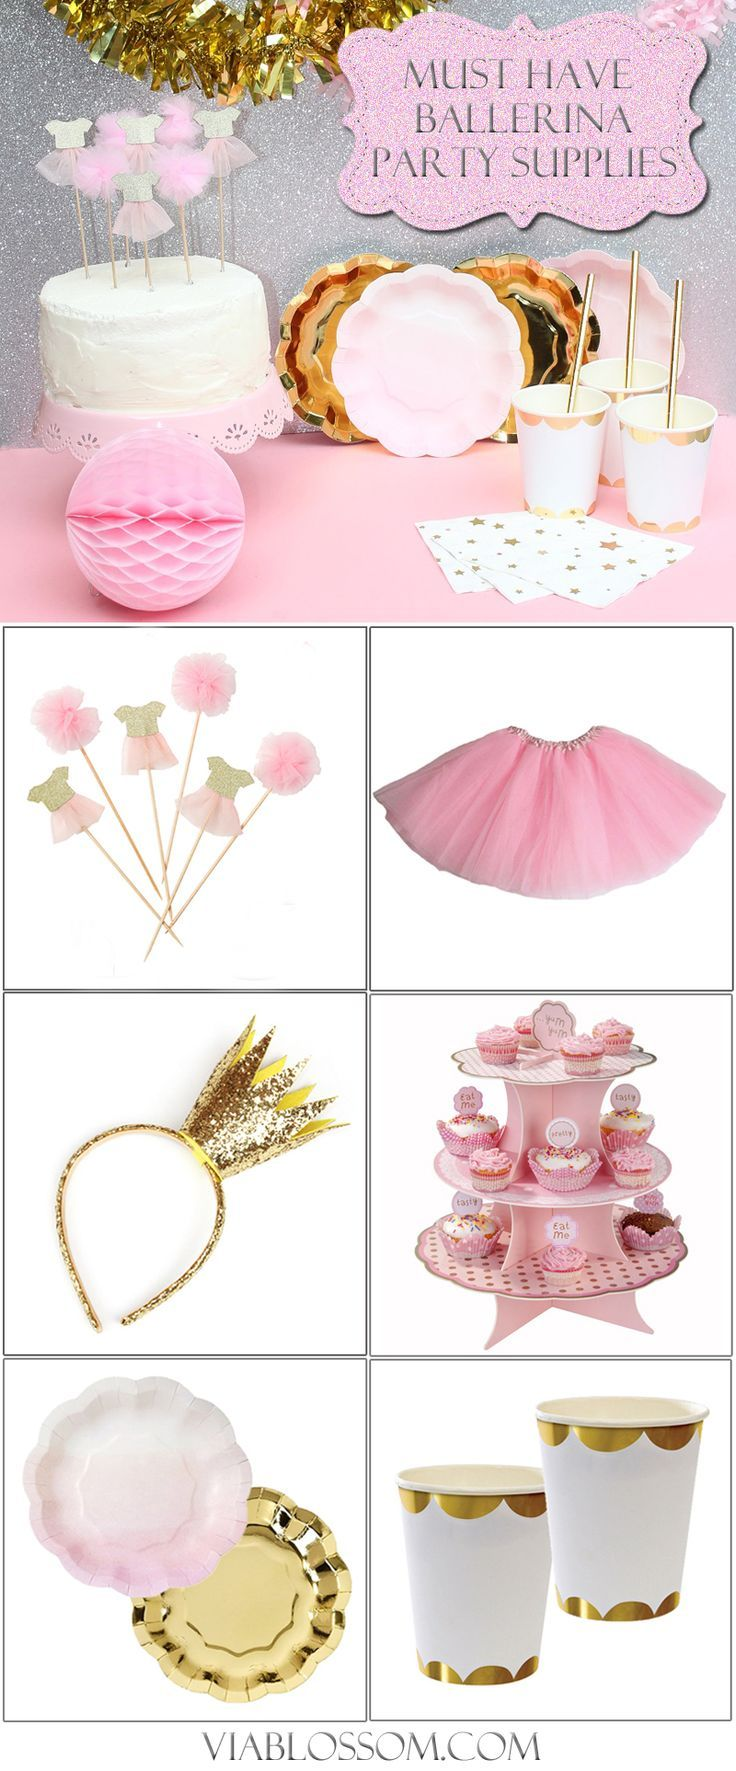 Must Have Ballerina Party Supplies for a Magical girl birthday party